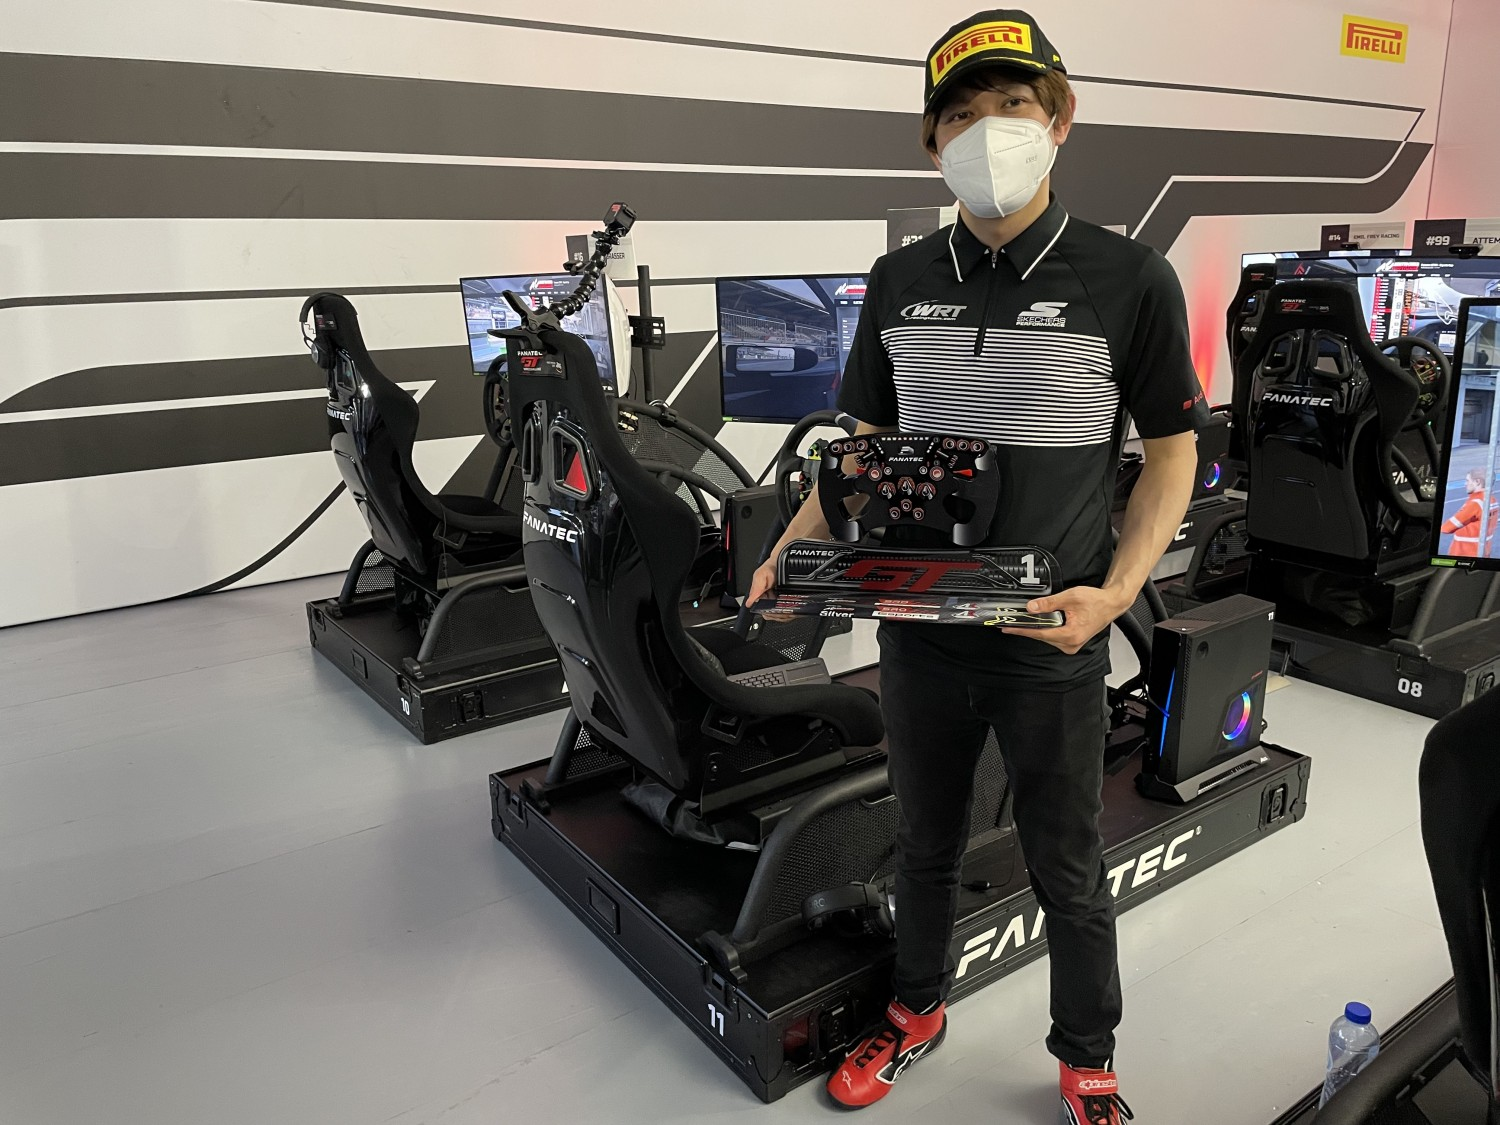 Esports: Tomita charges to overall victory as Rougier wraps up Pro title at the Nurburgring